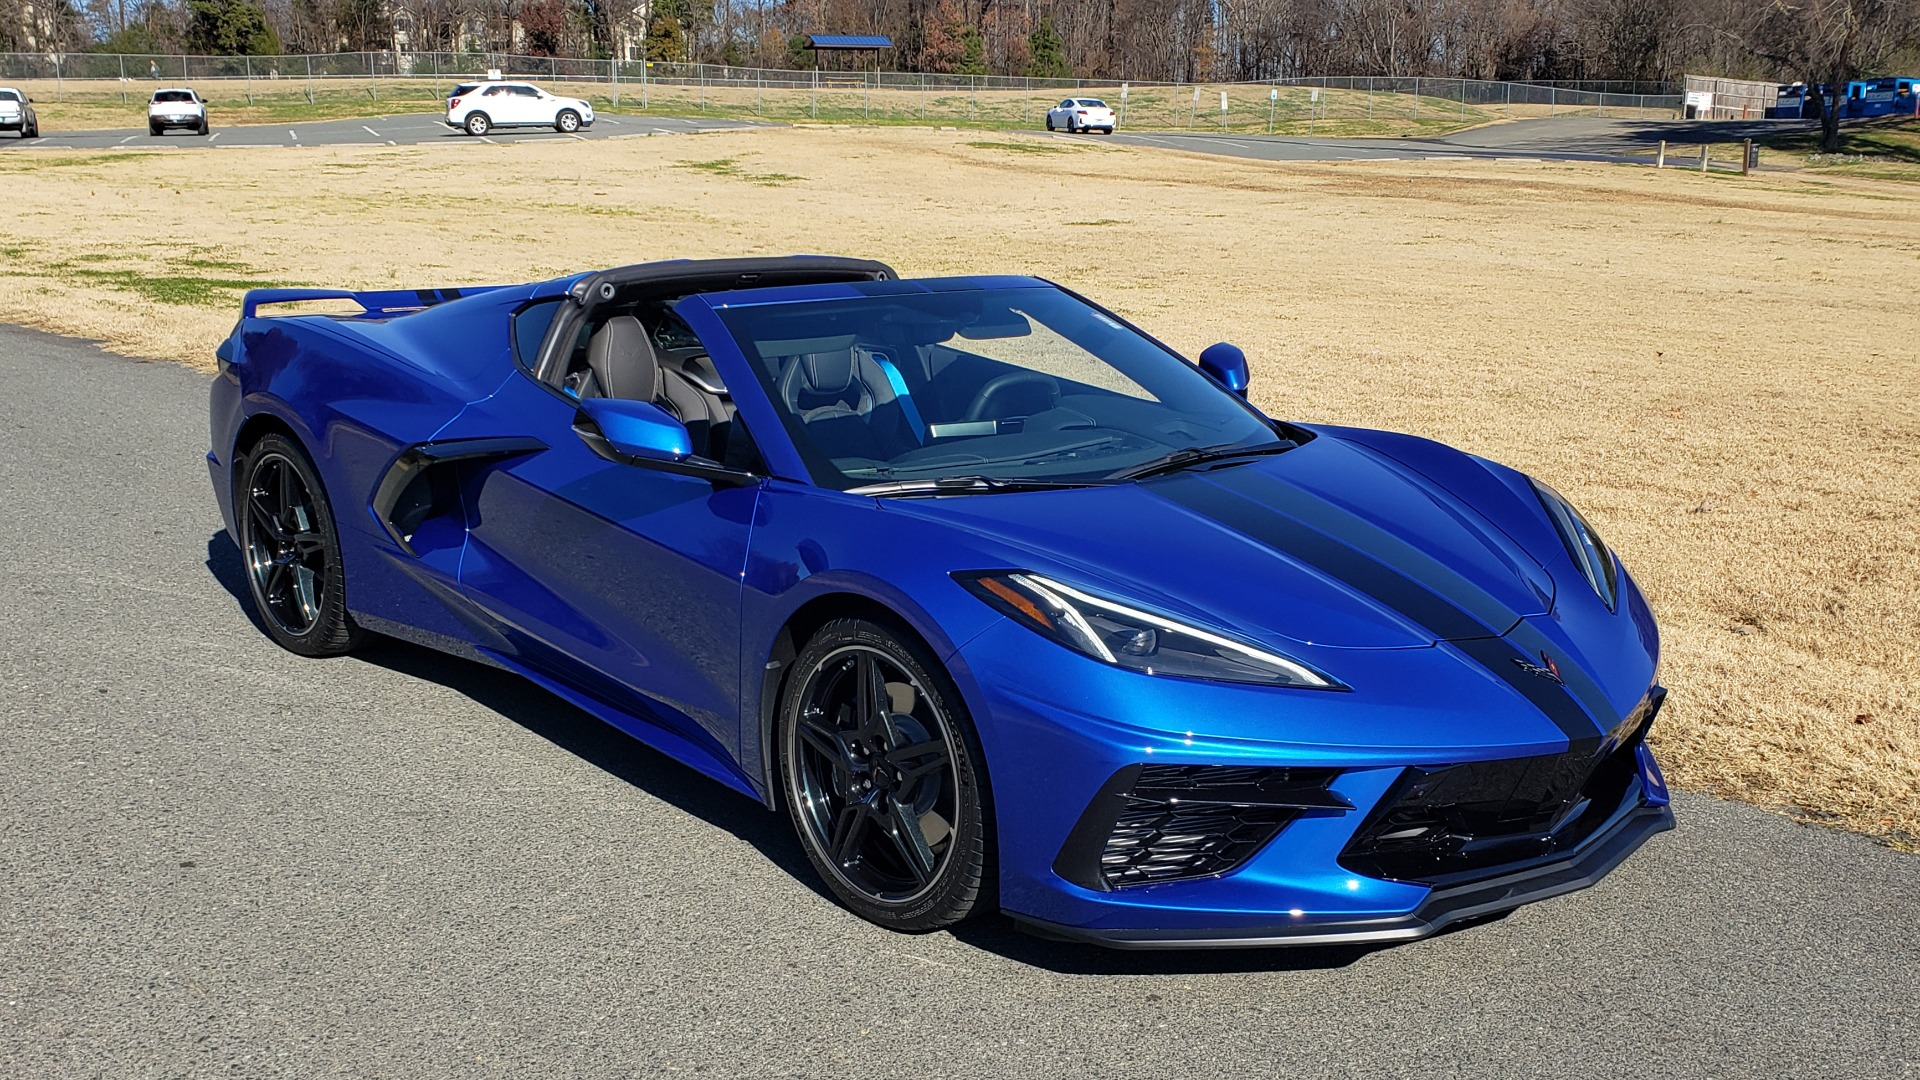 Used 2020 Chevrolet C8 CORVETTE STINGRAY 2LT COUPE / NAV / HUD / BOSE / GT2 SEATS / FRONT LIFT / REARVIEW for sale Sold at Formula Imports in Charlotte NC 28227 15